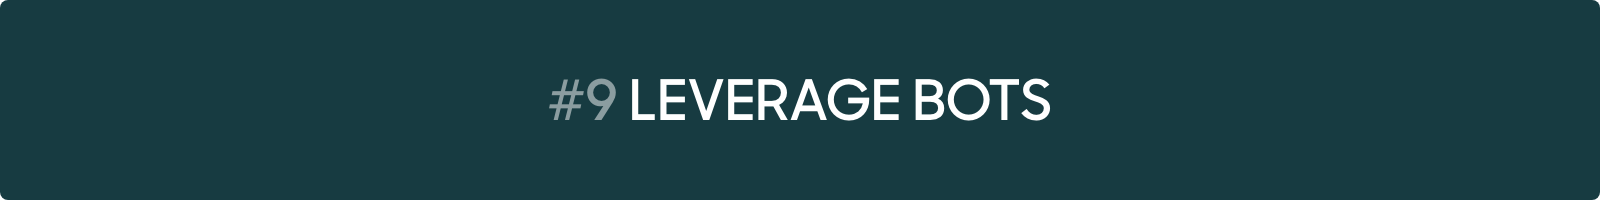 Conversational Marketing Tip #9: Leverage bots